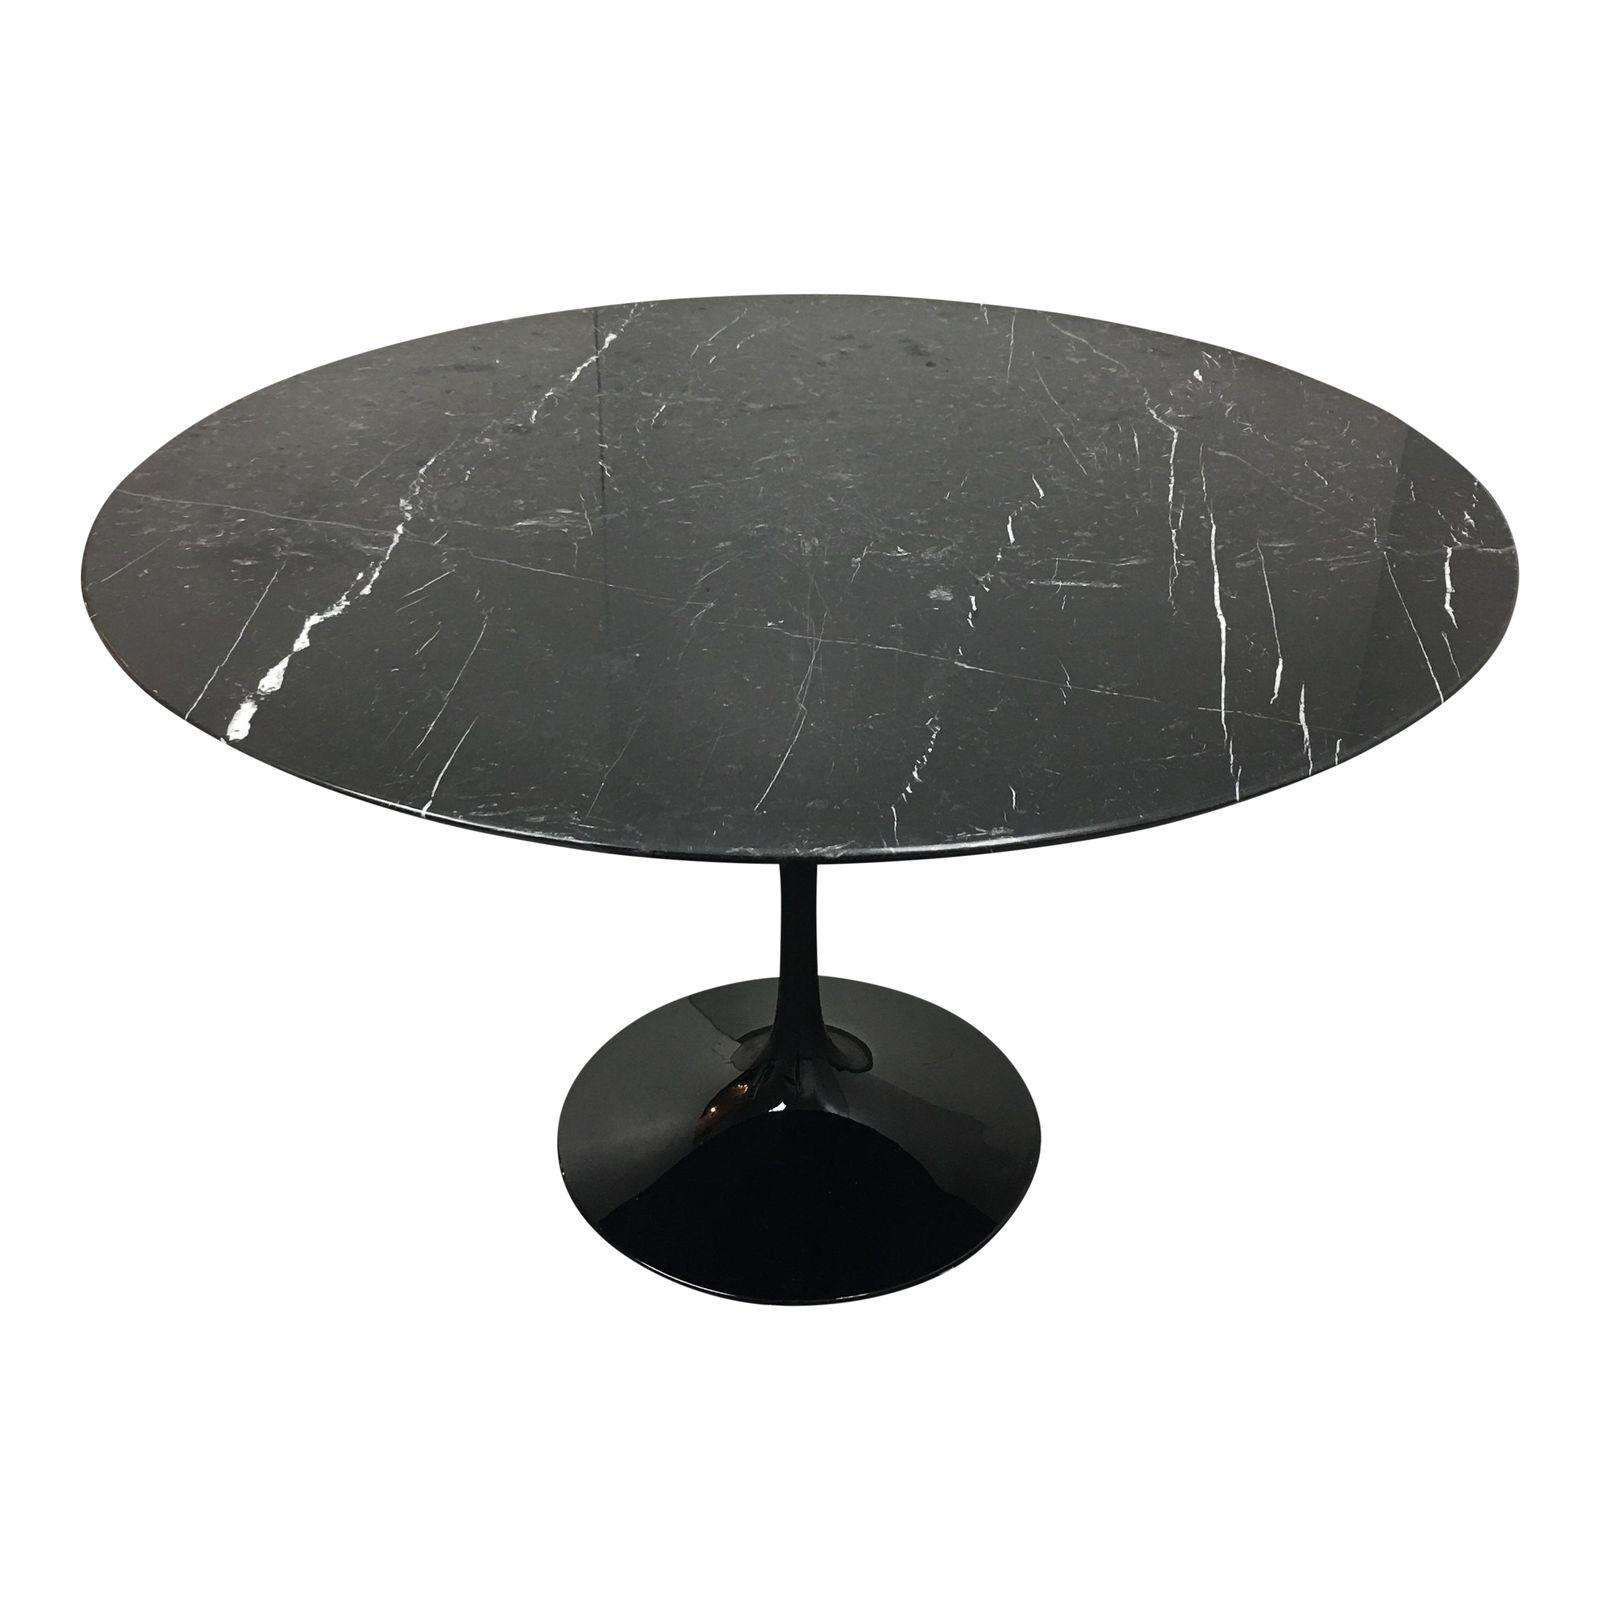 Room Board Saarinen Nero Black Marble Table Original Price - Room and board saarinen table